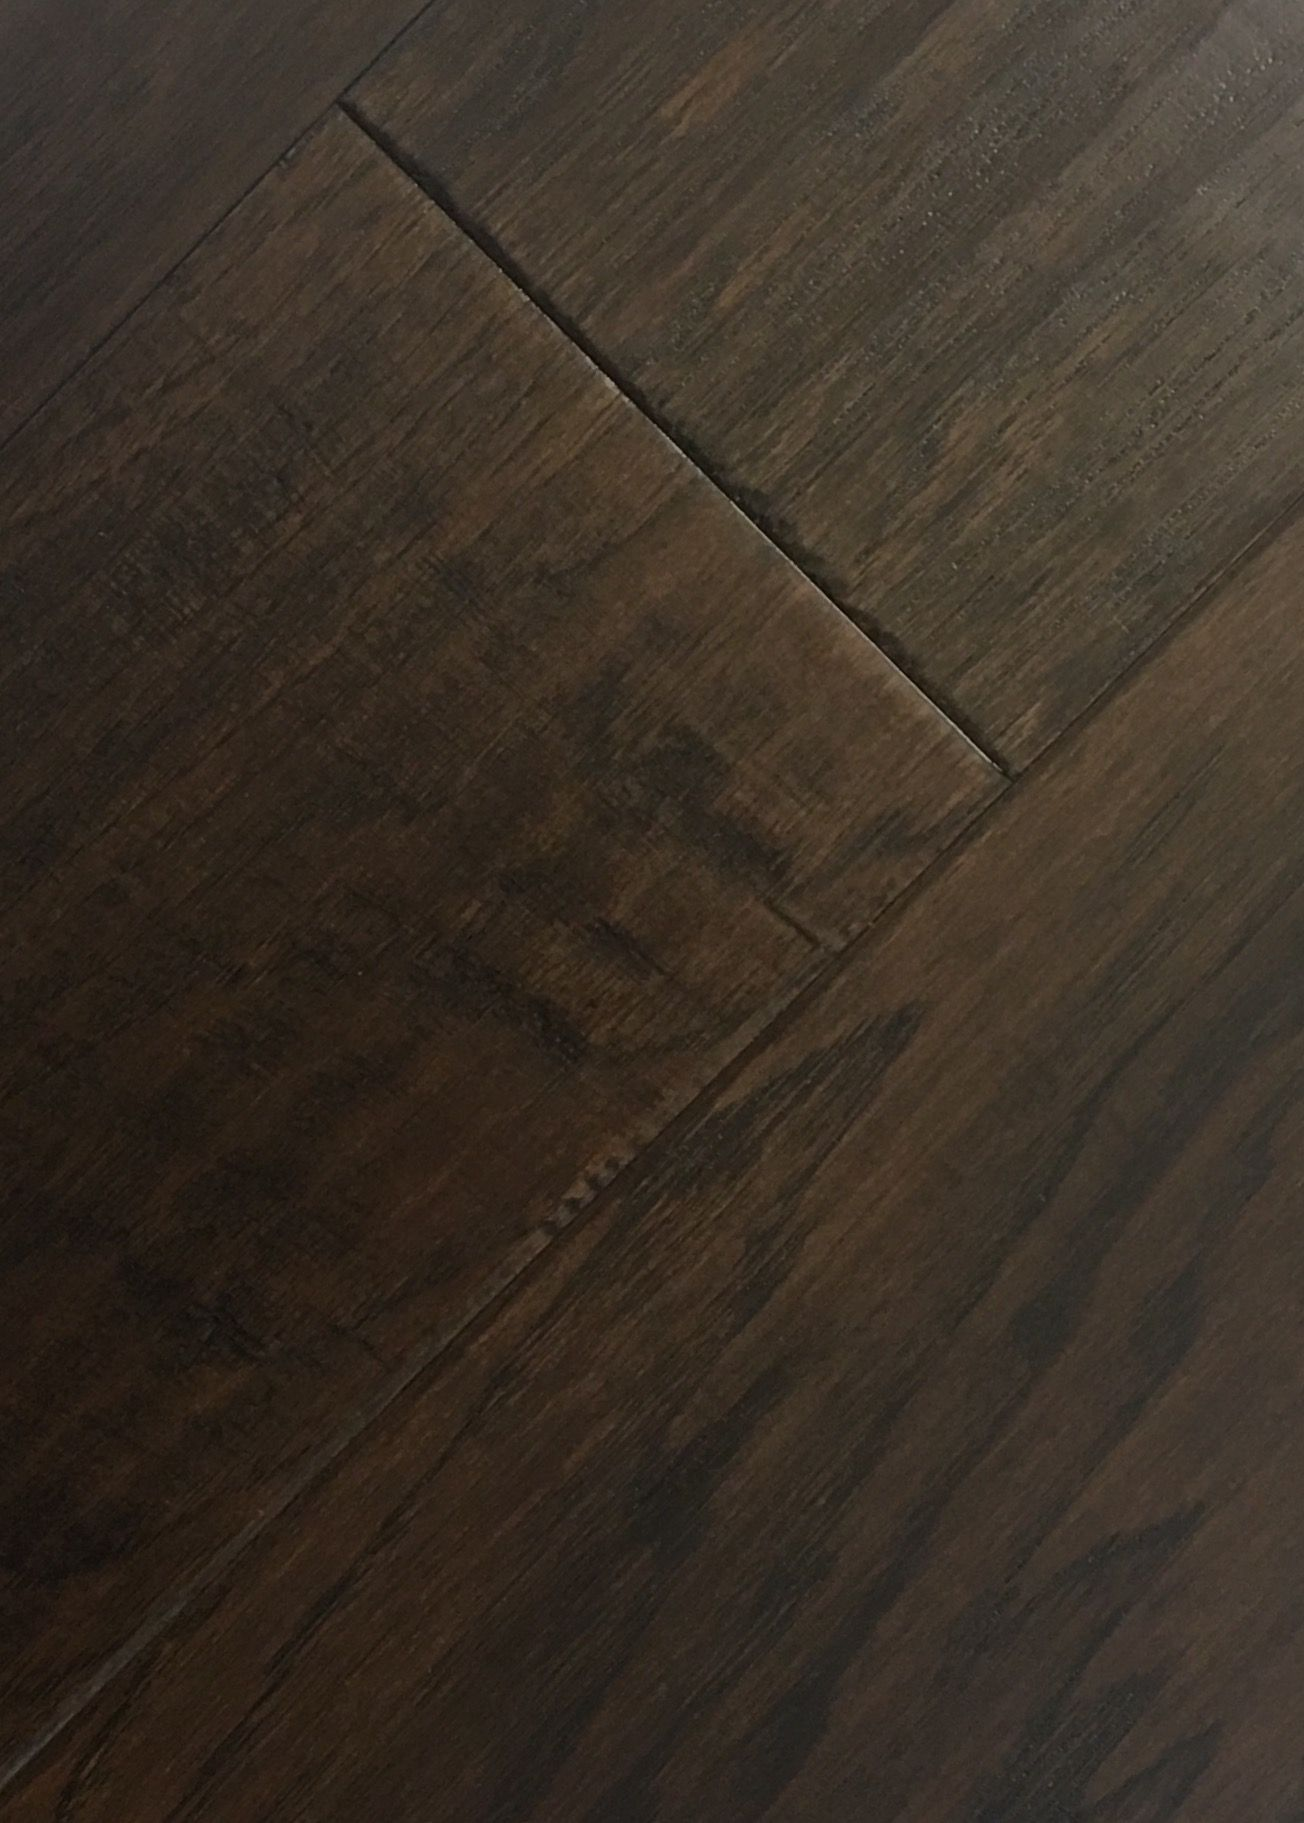 ... Contractor In San Antonio TX | We carry carpet, vinyl, tile, hardwood, laminate floors and floor installation. Commercial and Residential grade